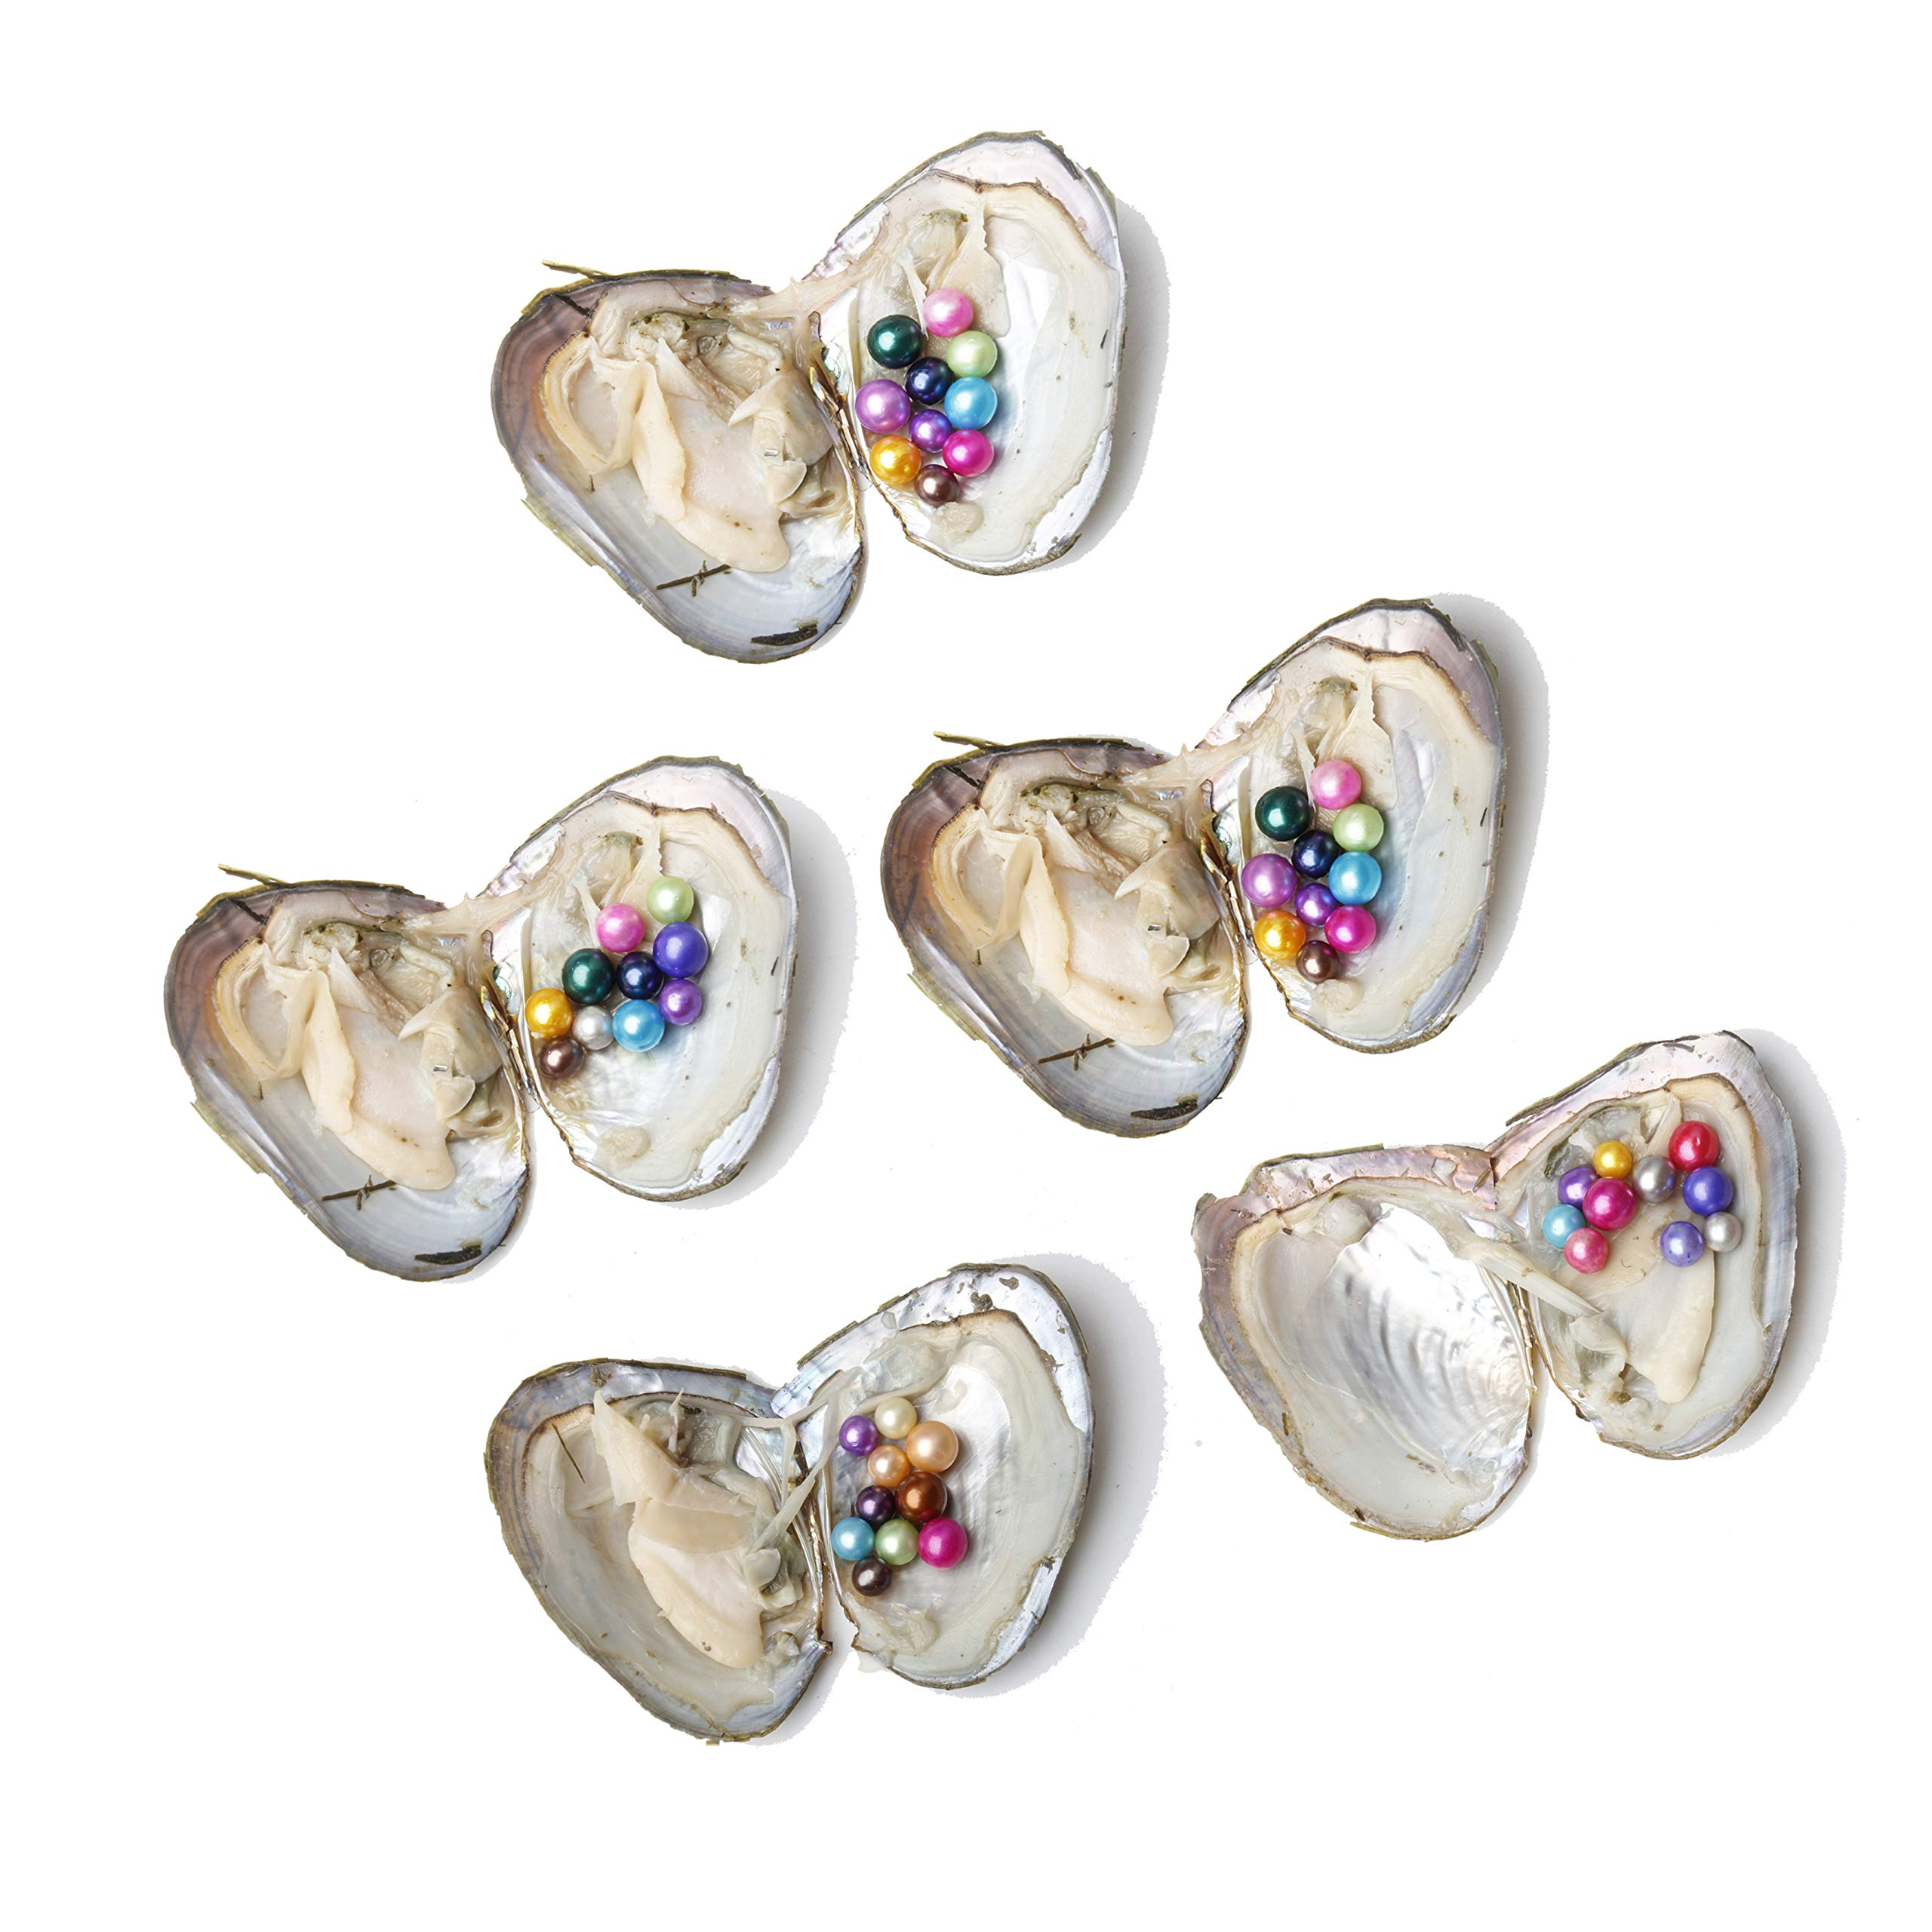 JNMM 5PC Pearl Oysters Freshwater Cultured with 10 Mix Color Round Love Wish Oysters with Pearls Inside 10 Colors (7-8mm), Valentines Mothers Day Birthday Gifts Pearl Wedding Party (Total 50 Pearls) by JNMM (Image #2)